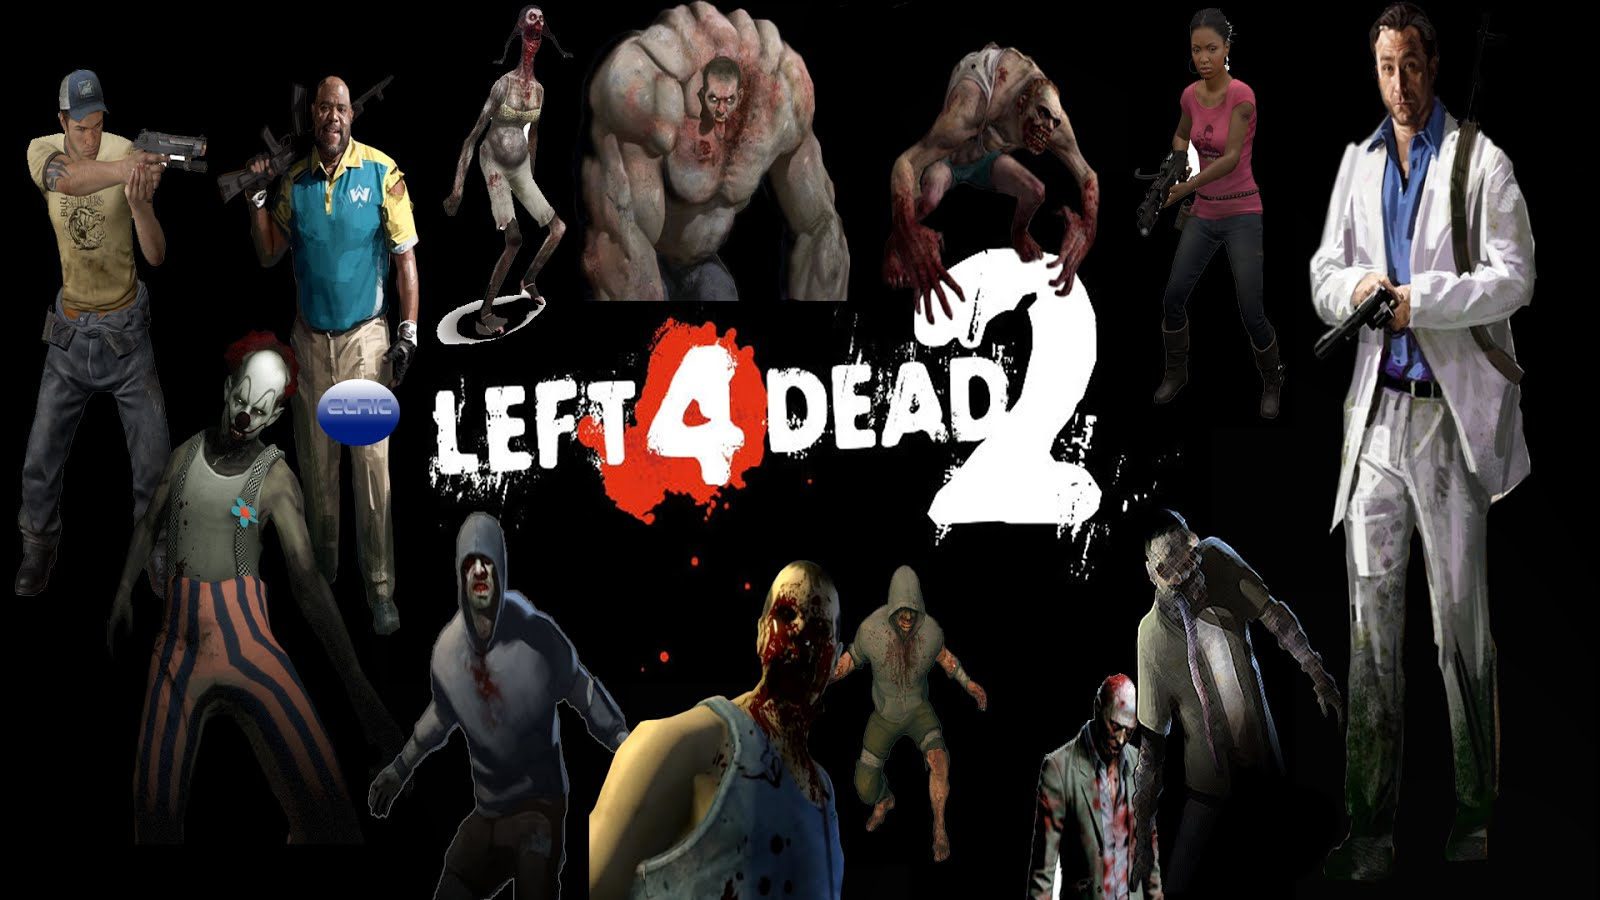 Left 4 Dead 2 Hd Posted By Samantha Anderson